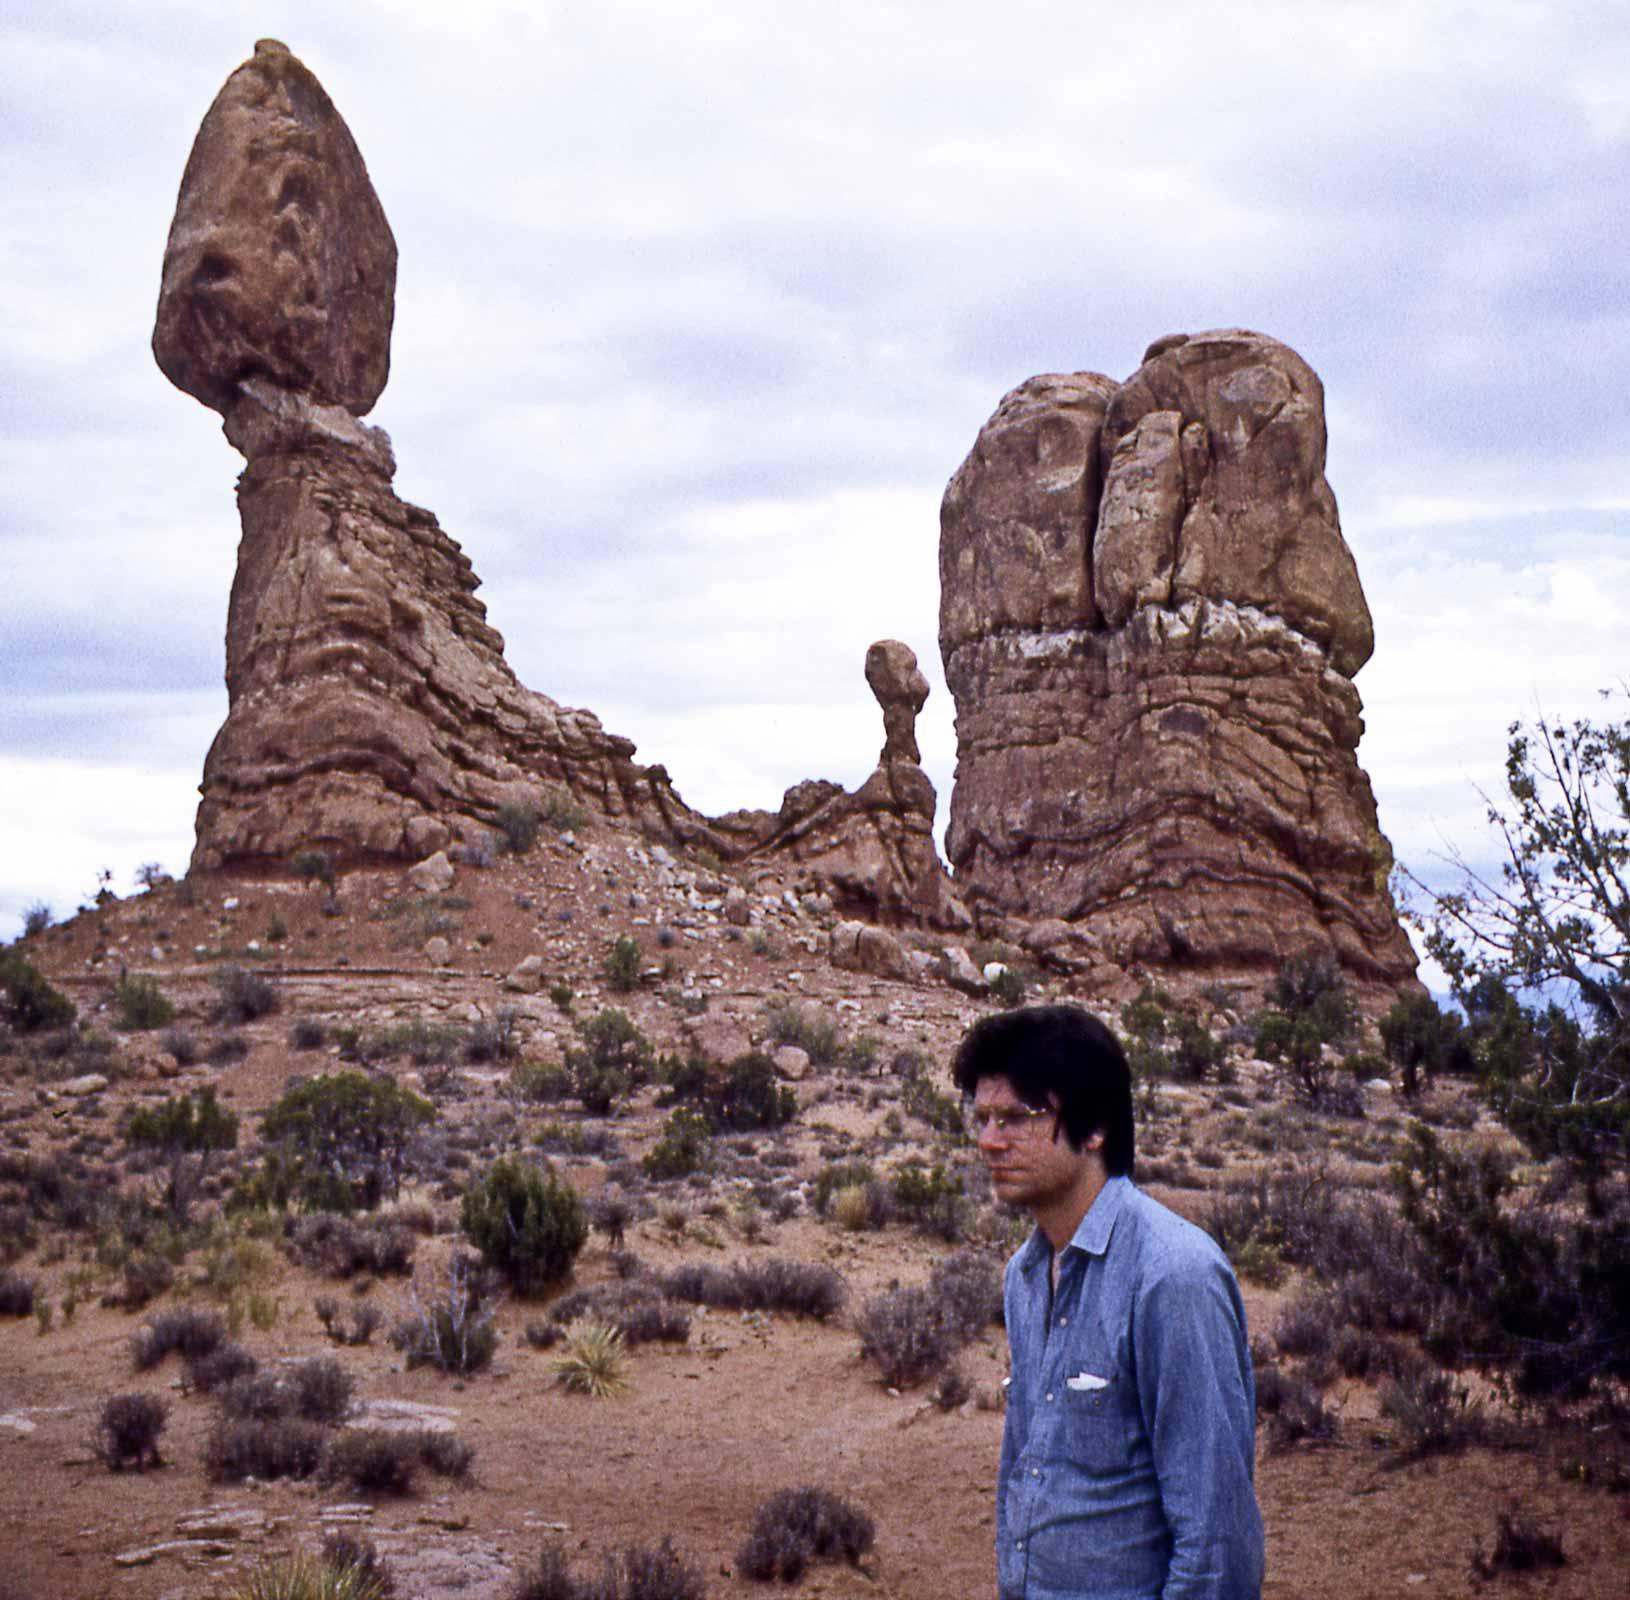 Robert Smithson at Balanced Rock, Arches National Park, Utah